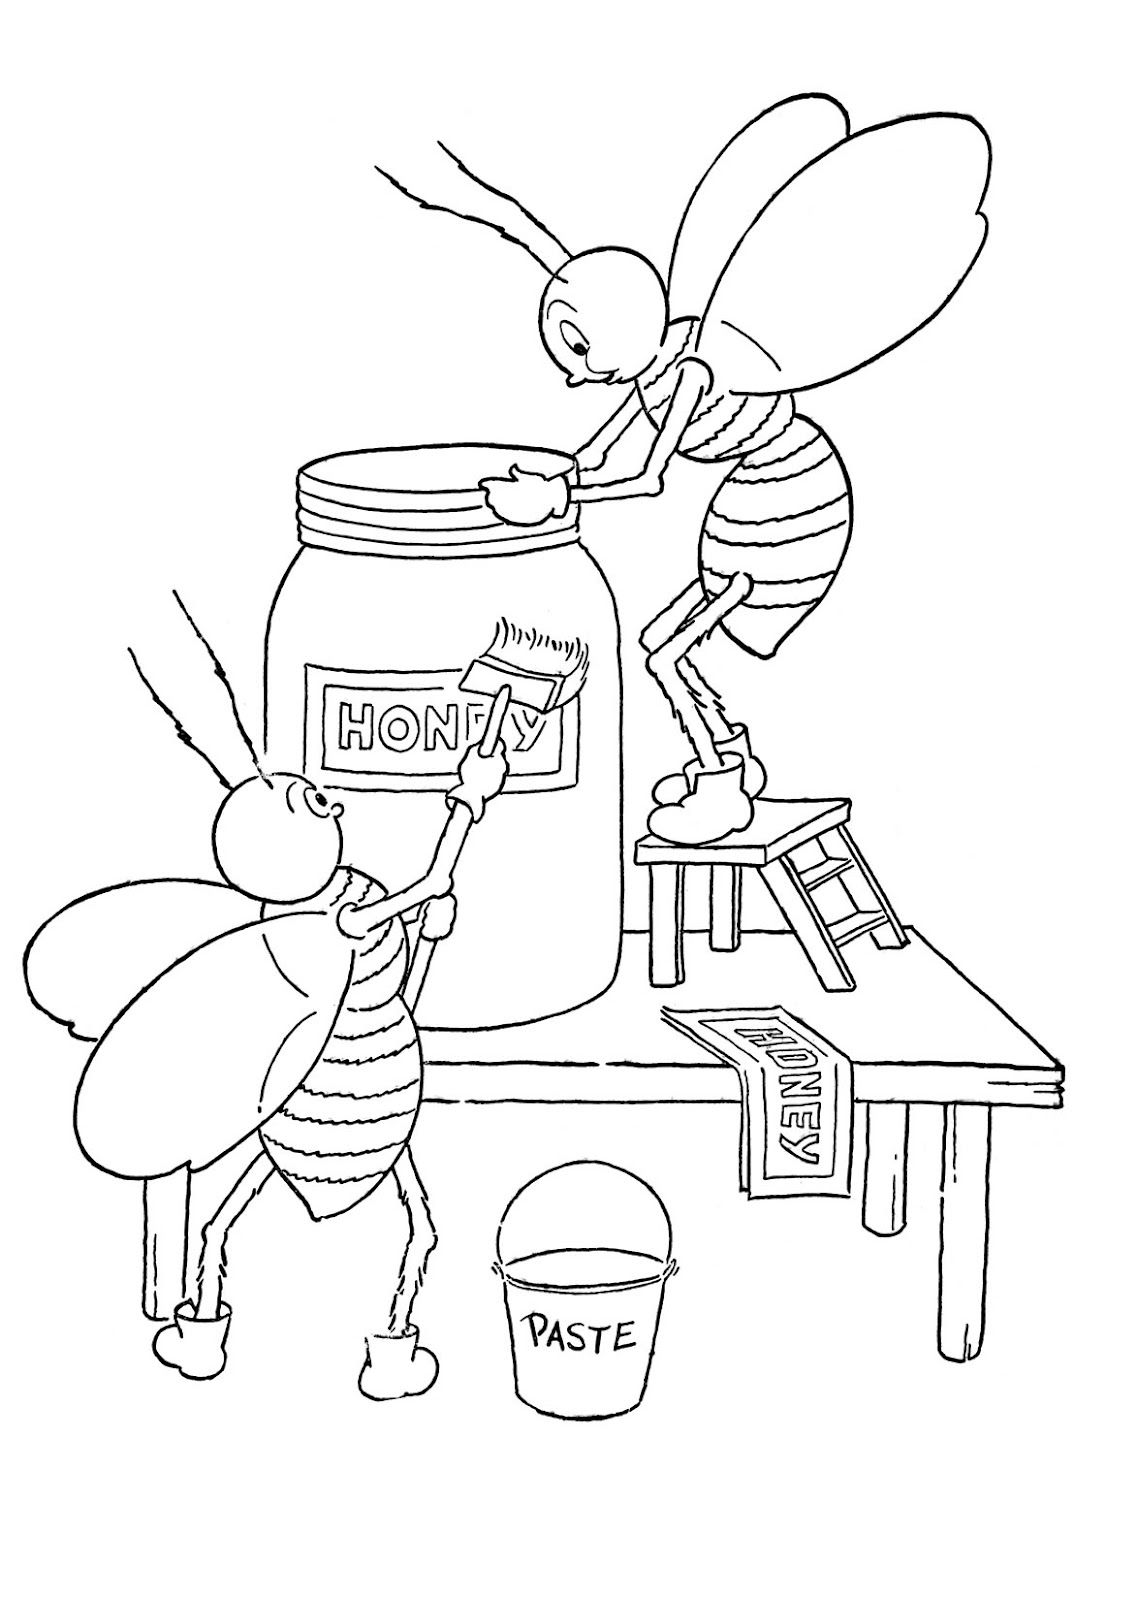 Kids Printable Honey Bees Coloring Page The Graphics Fairy Bee Coloring Pages Cartoon Coloring Pages Bee Drawing